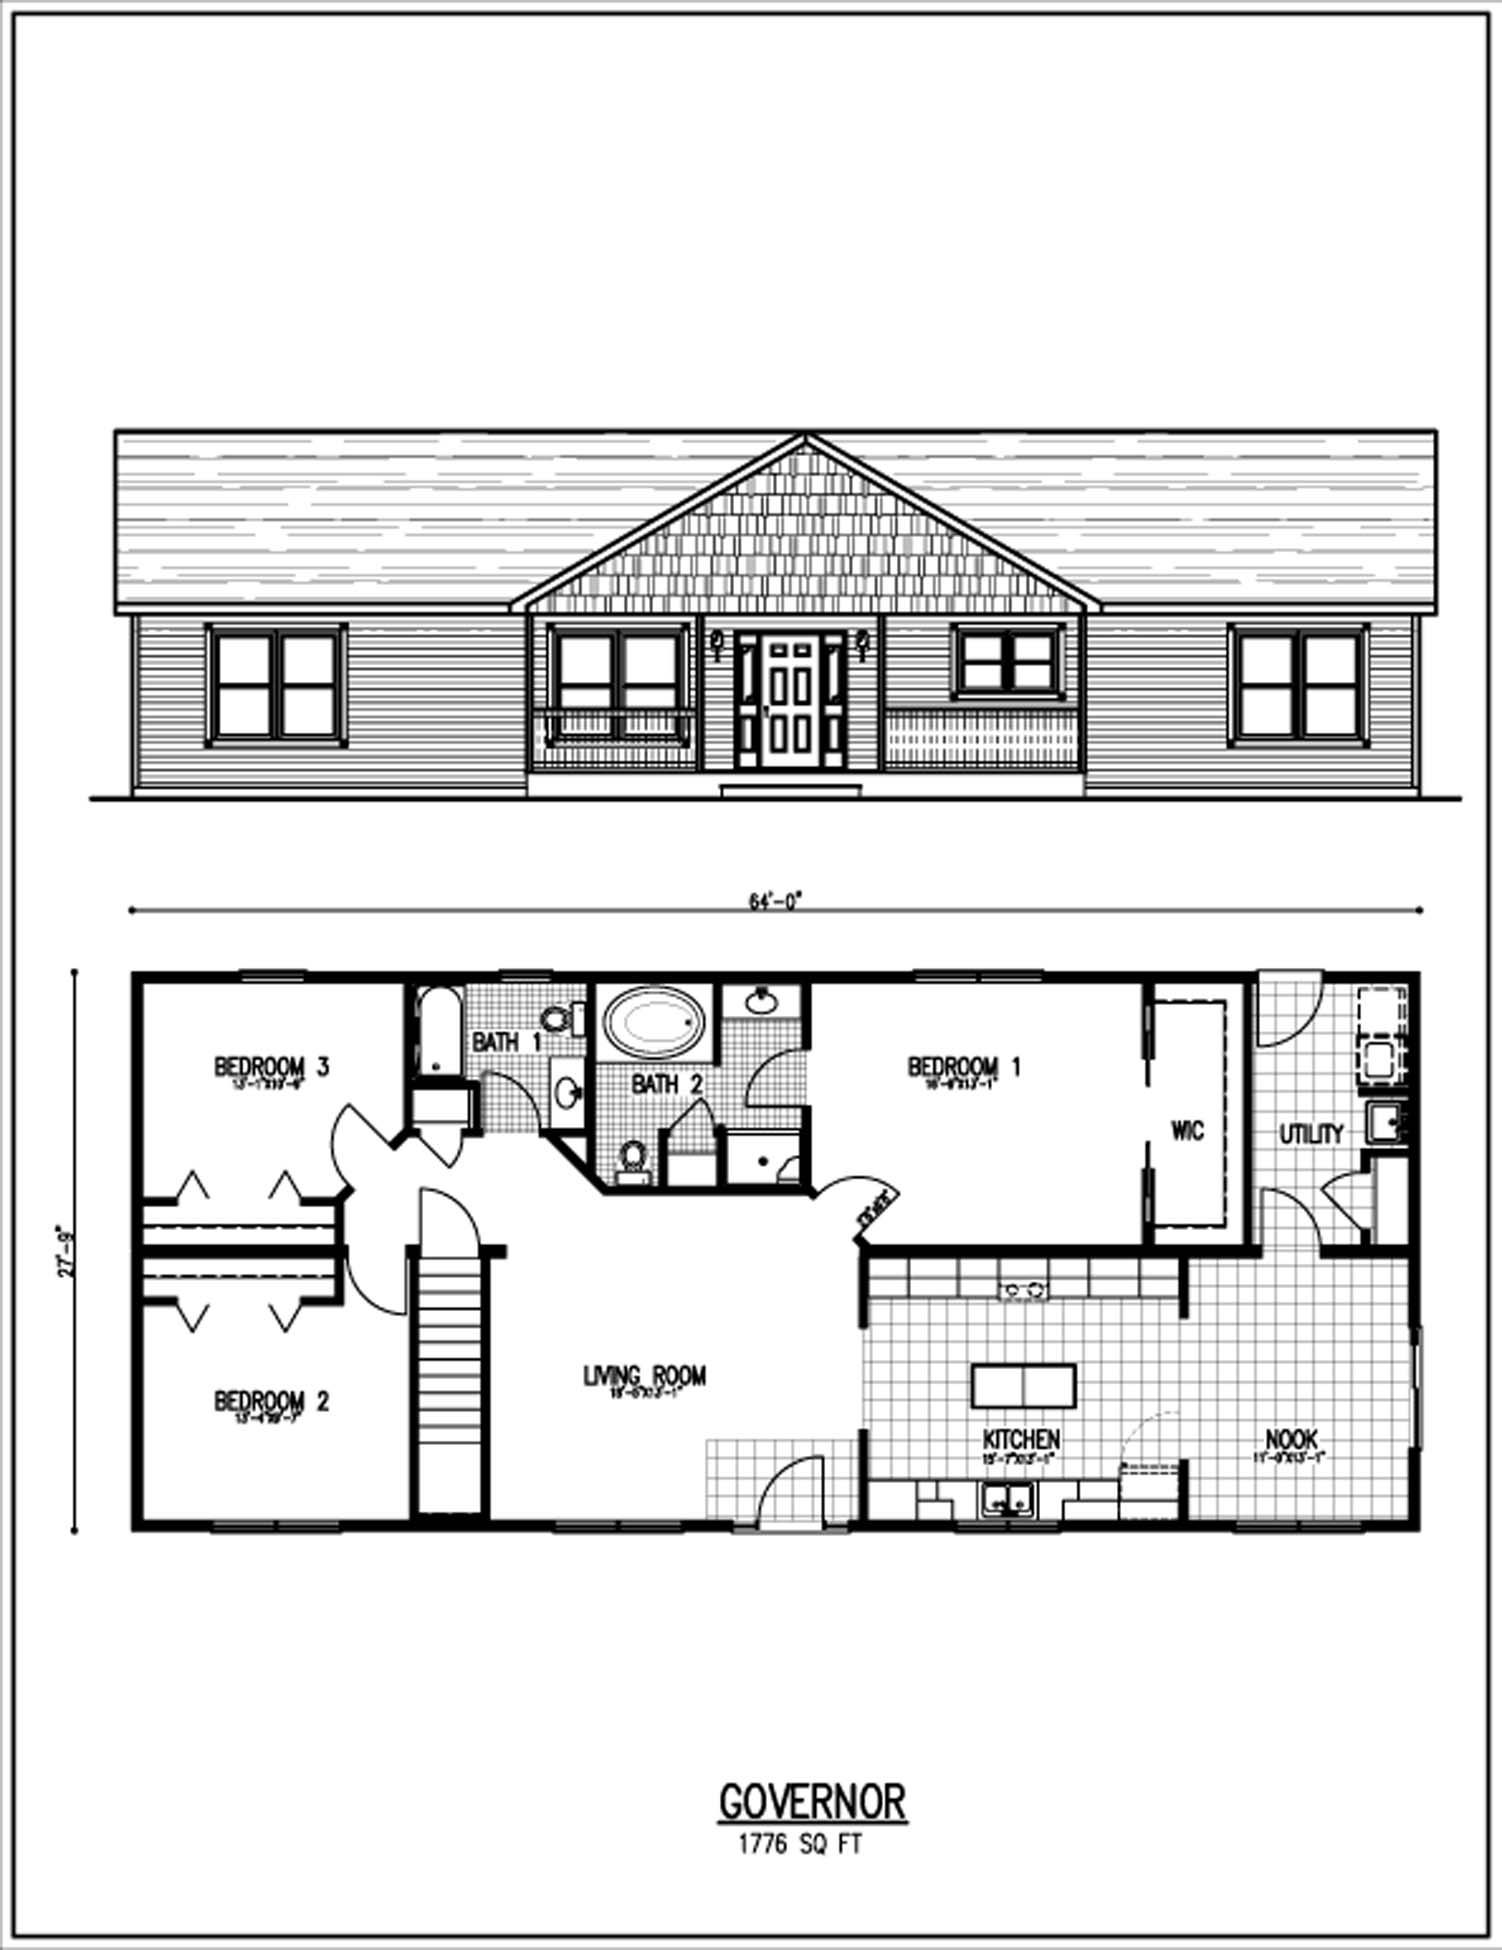 Floor plans by shawam082498 on pinterest floor plans for Ranch style floorplans